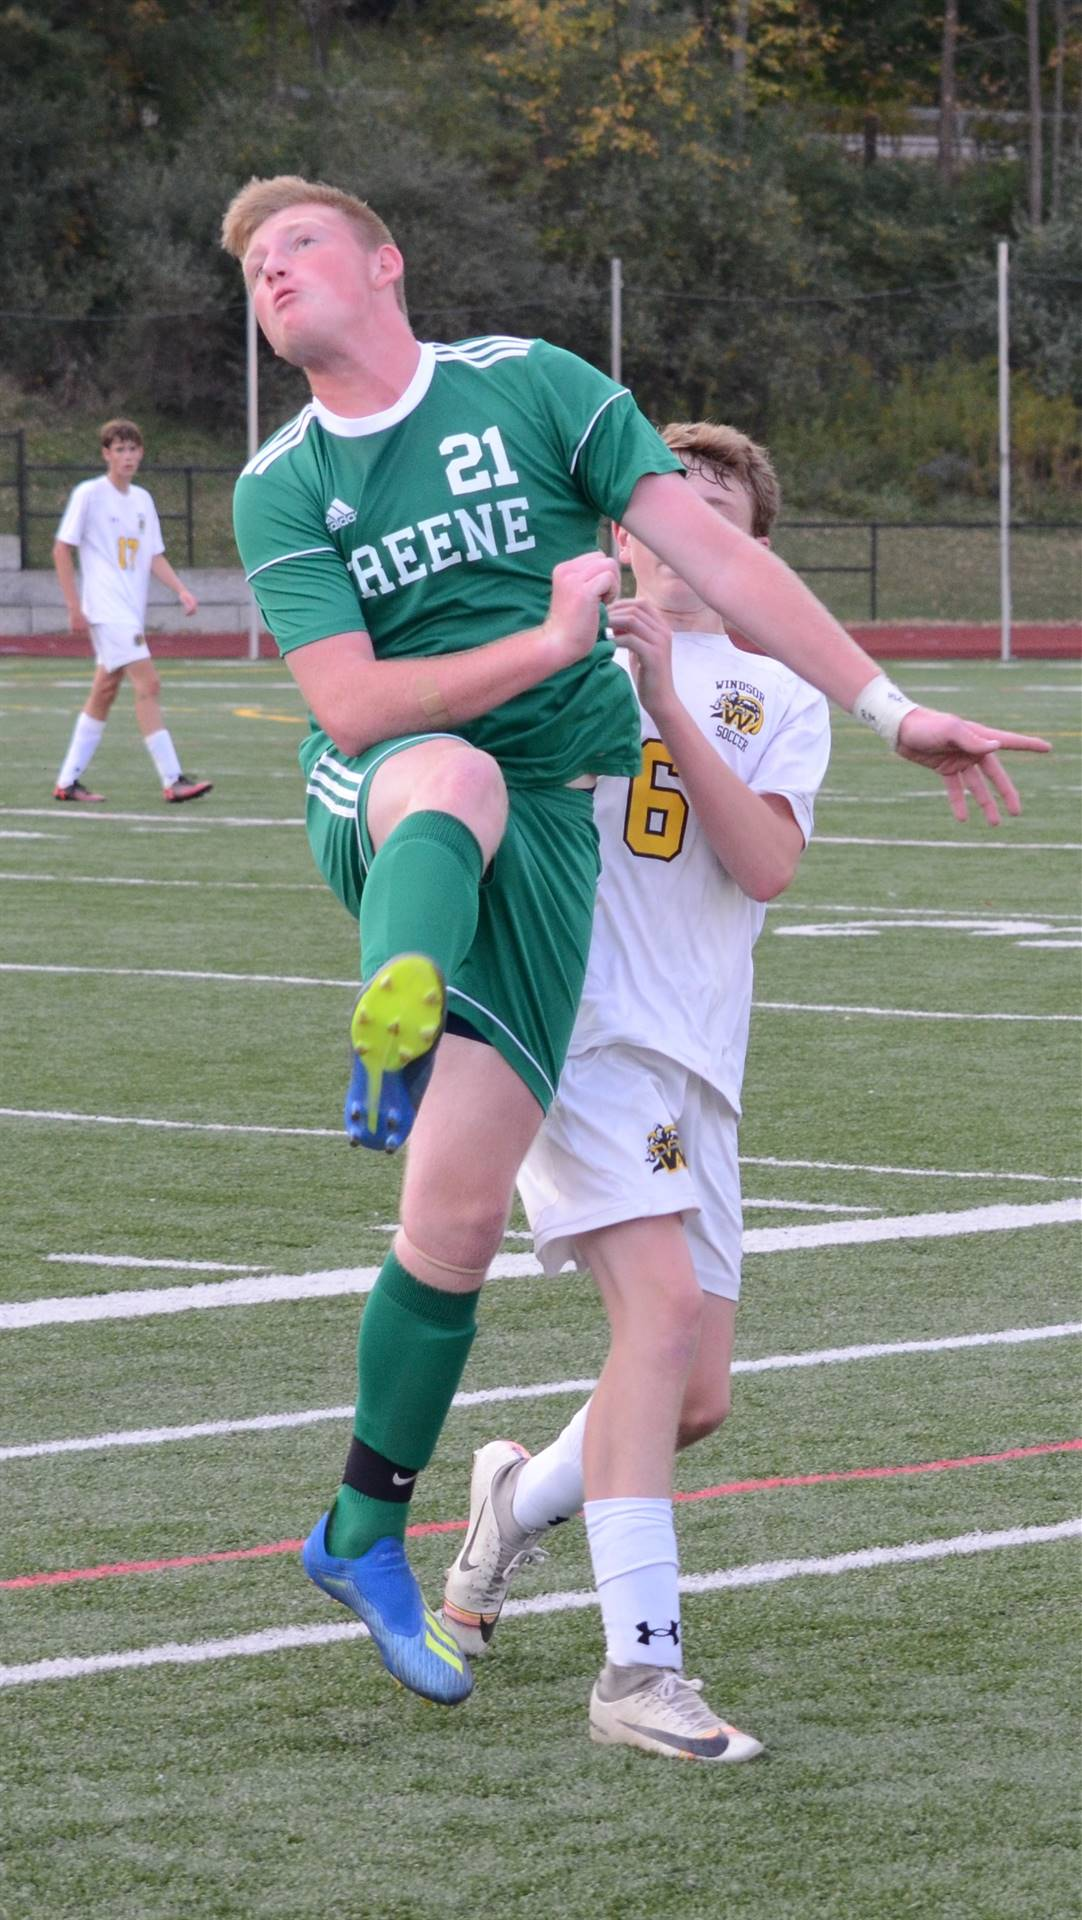 photo of boys soccer player